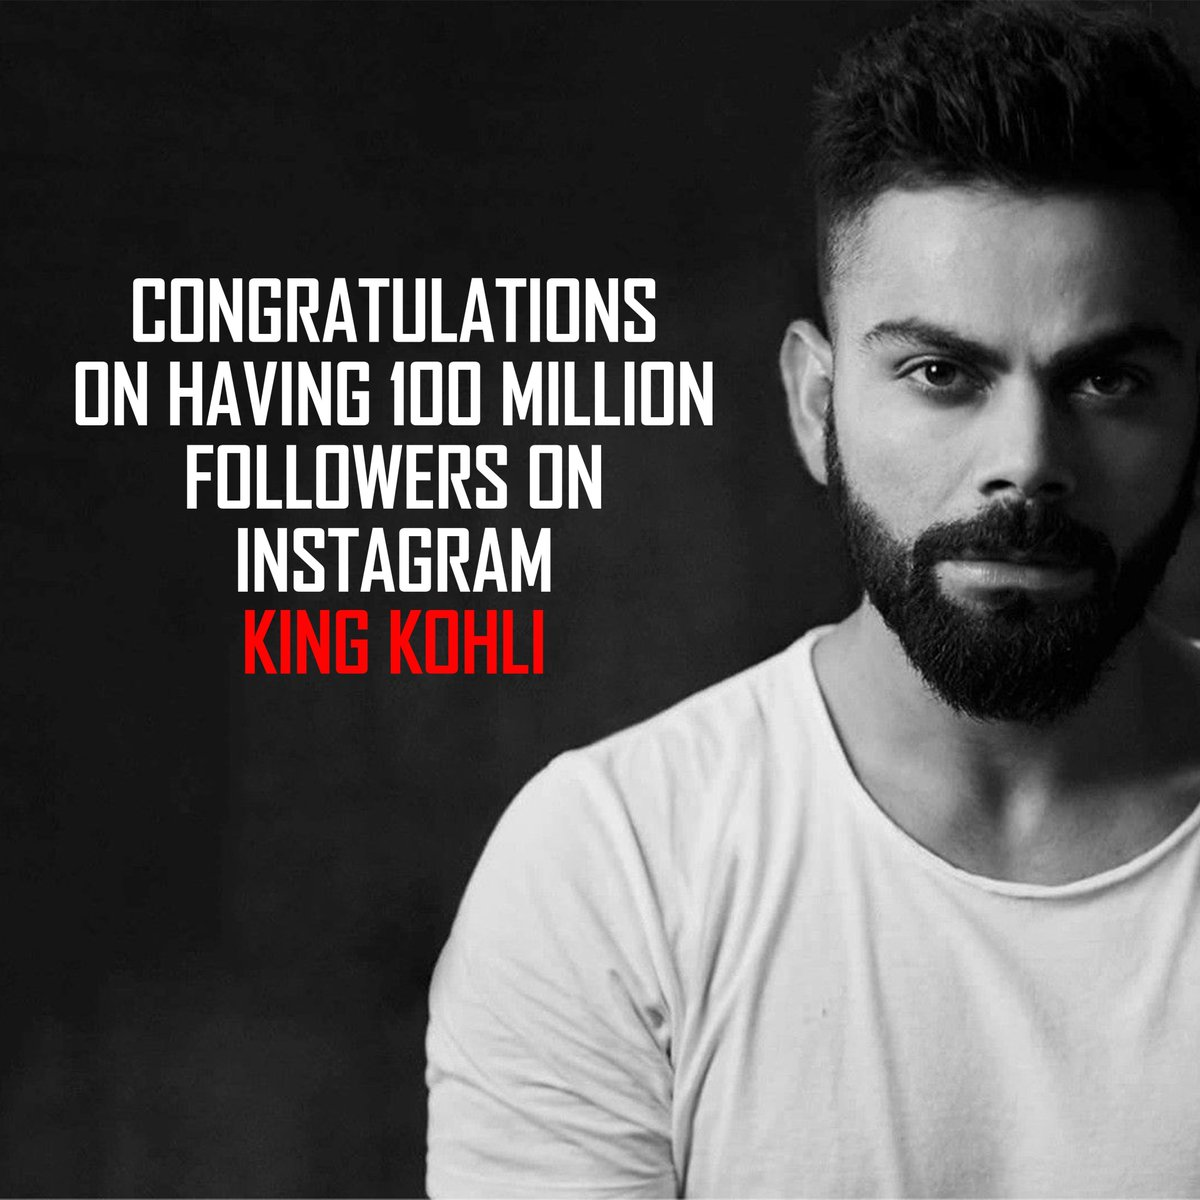 Kohli became the first Asian to touch 100 million followers on Instagram. Congratulations @imVkohli  #100MillionViratiansOnInsta #viratkohli #KingKohli #virushka #teamindia #SidharthShukla #BCCI @JayShah #Congratulations #EngvsInd